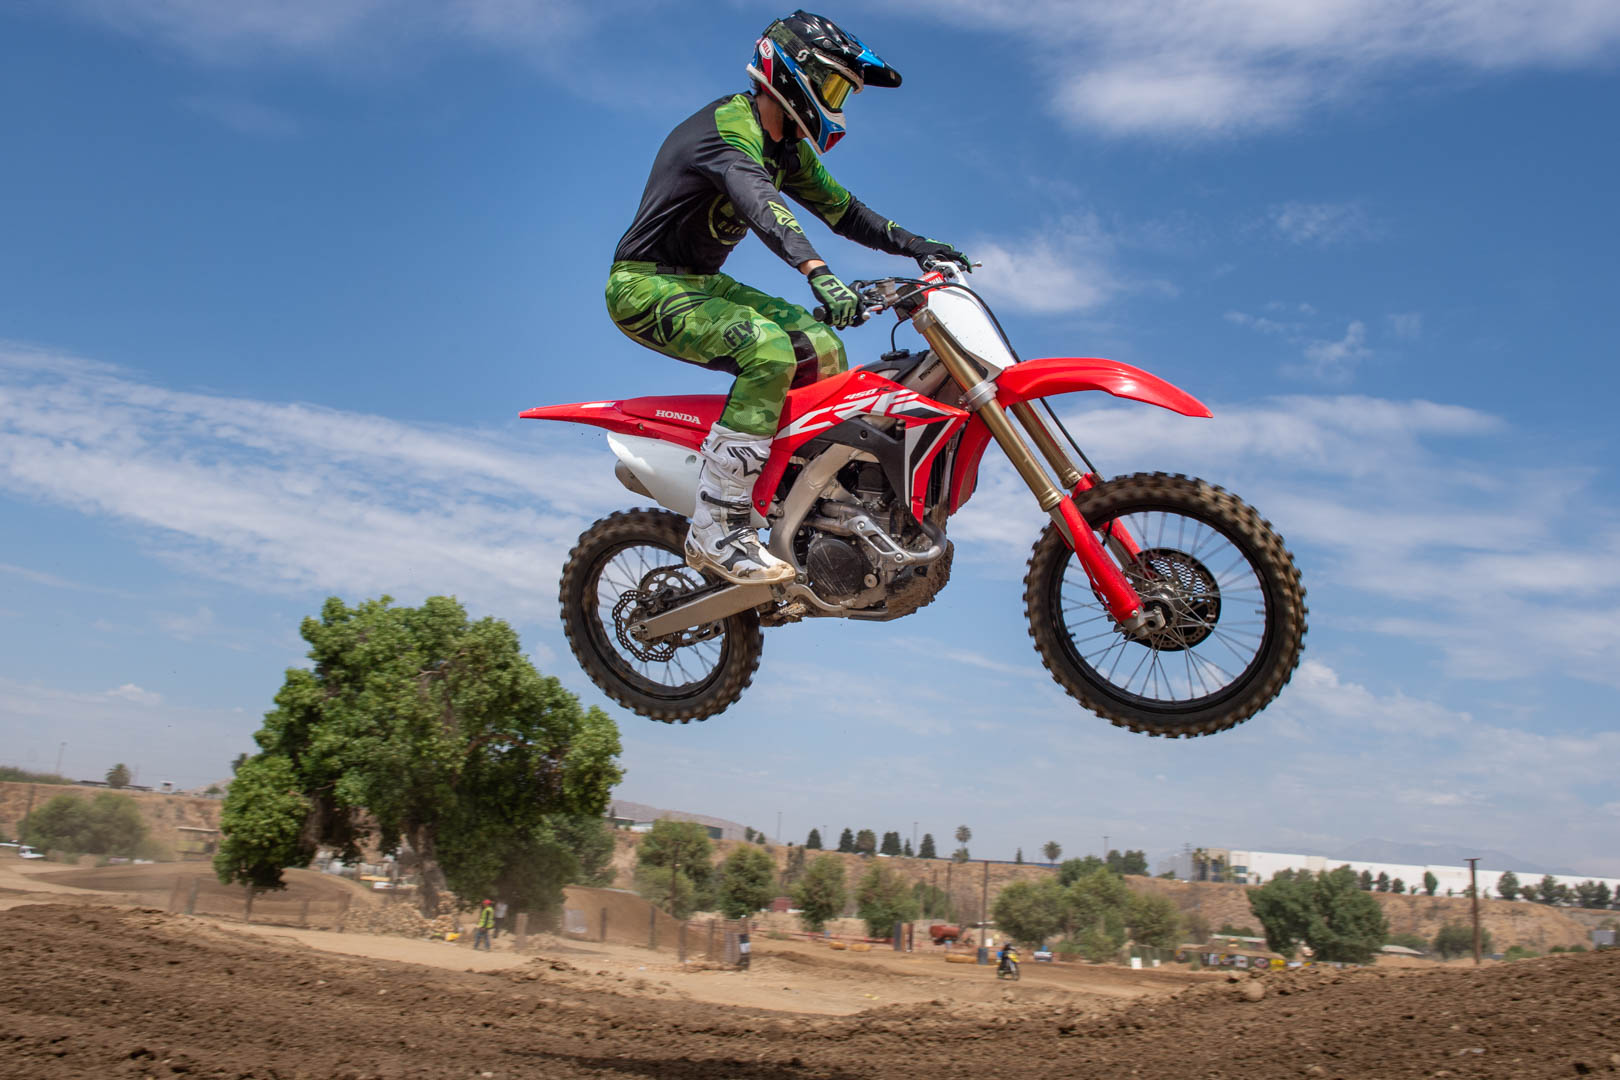 2020 Honda CRF450R Review